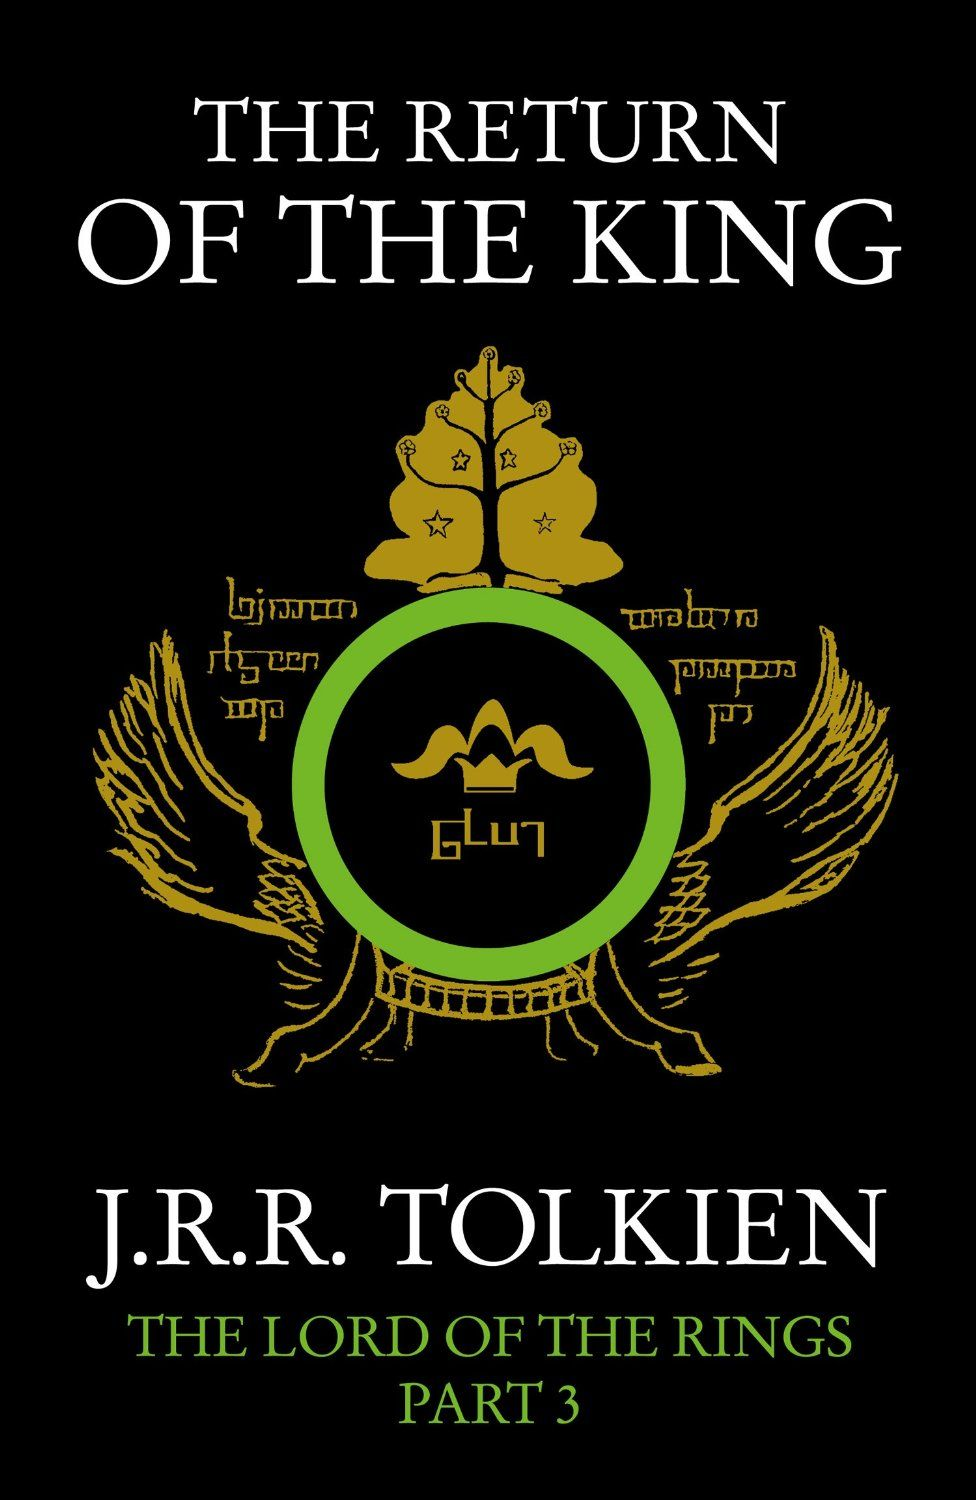 The return of the king by j r r tolkien httpamazon the return of the king by j r r tolkien httpamazon fandeluxe Choice Image